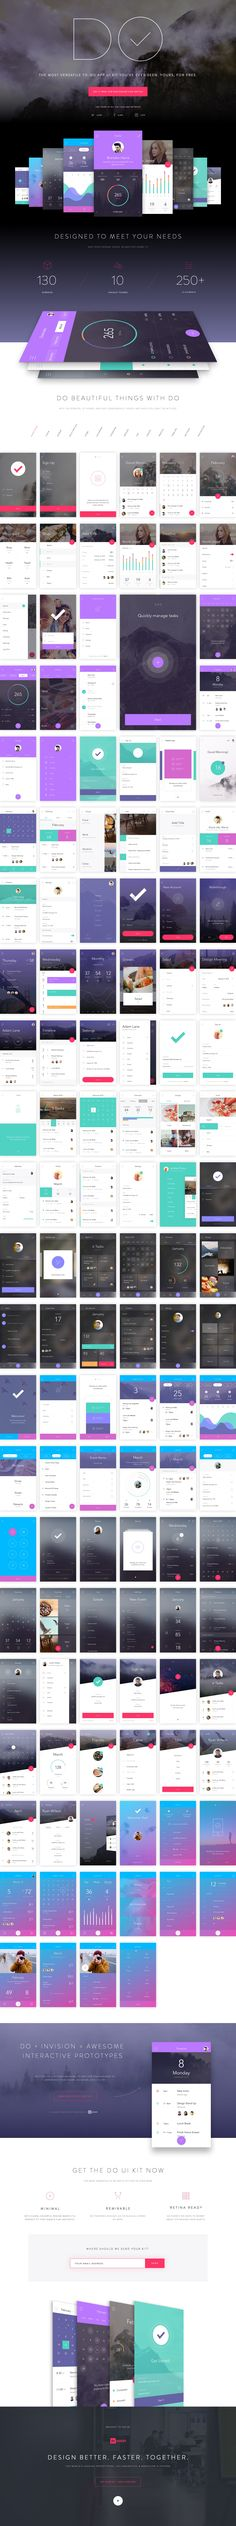 Loves Data Loves || Get DO UI Kit for Photoshop & Sketch by Anton Aheichanka | #UI #userinterface #app || For the latest in technology, online marketing and data analysis, check out lovesdata.co/blog